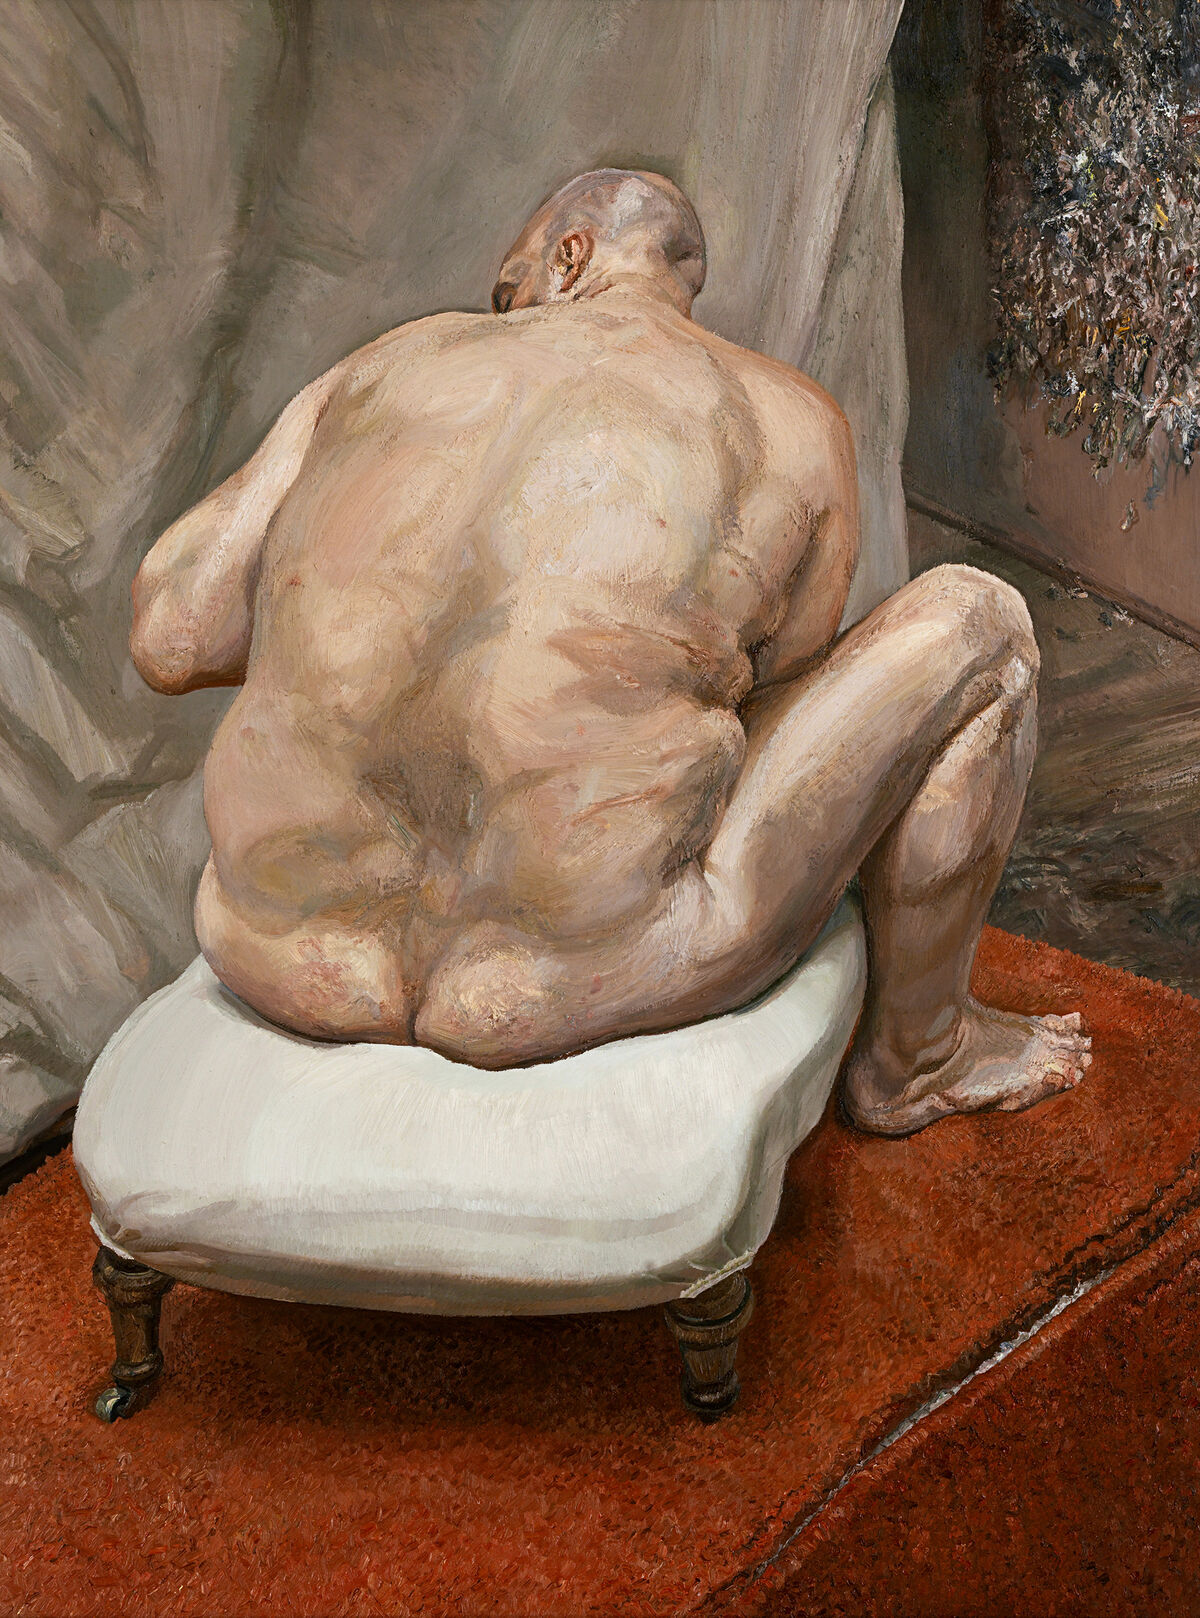 Lucian Freud, Naked Man, Back View, 1991–92. Courtesy of The Metropolitan Museum of Art and Acquavella Galleries.